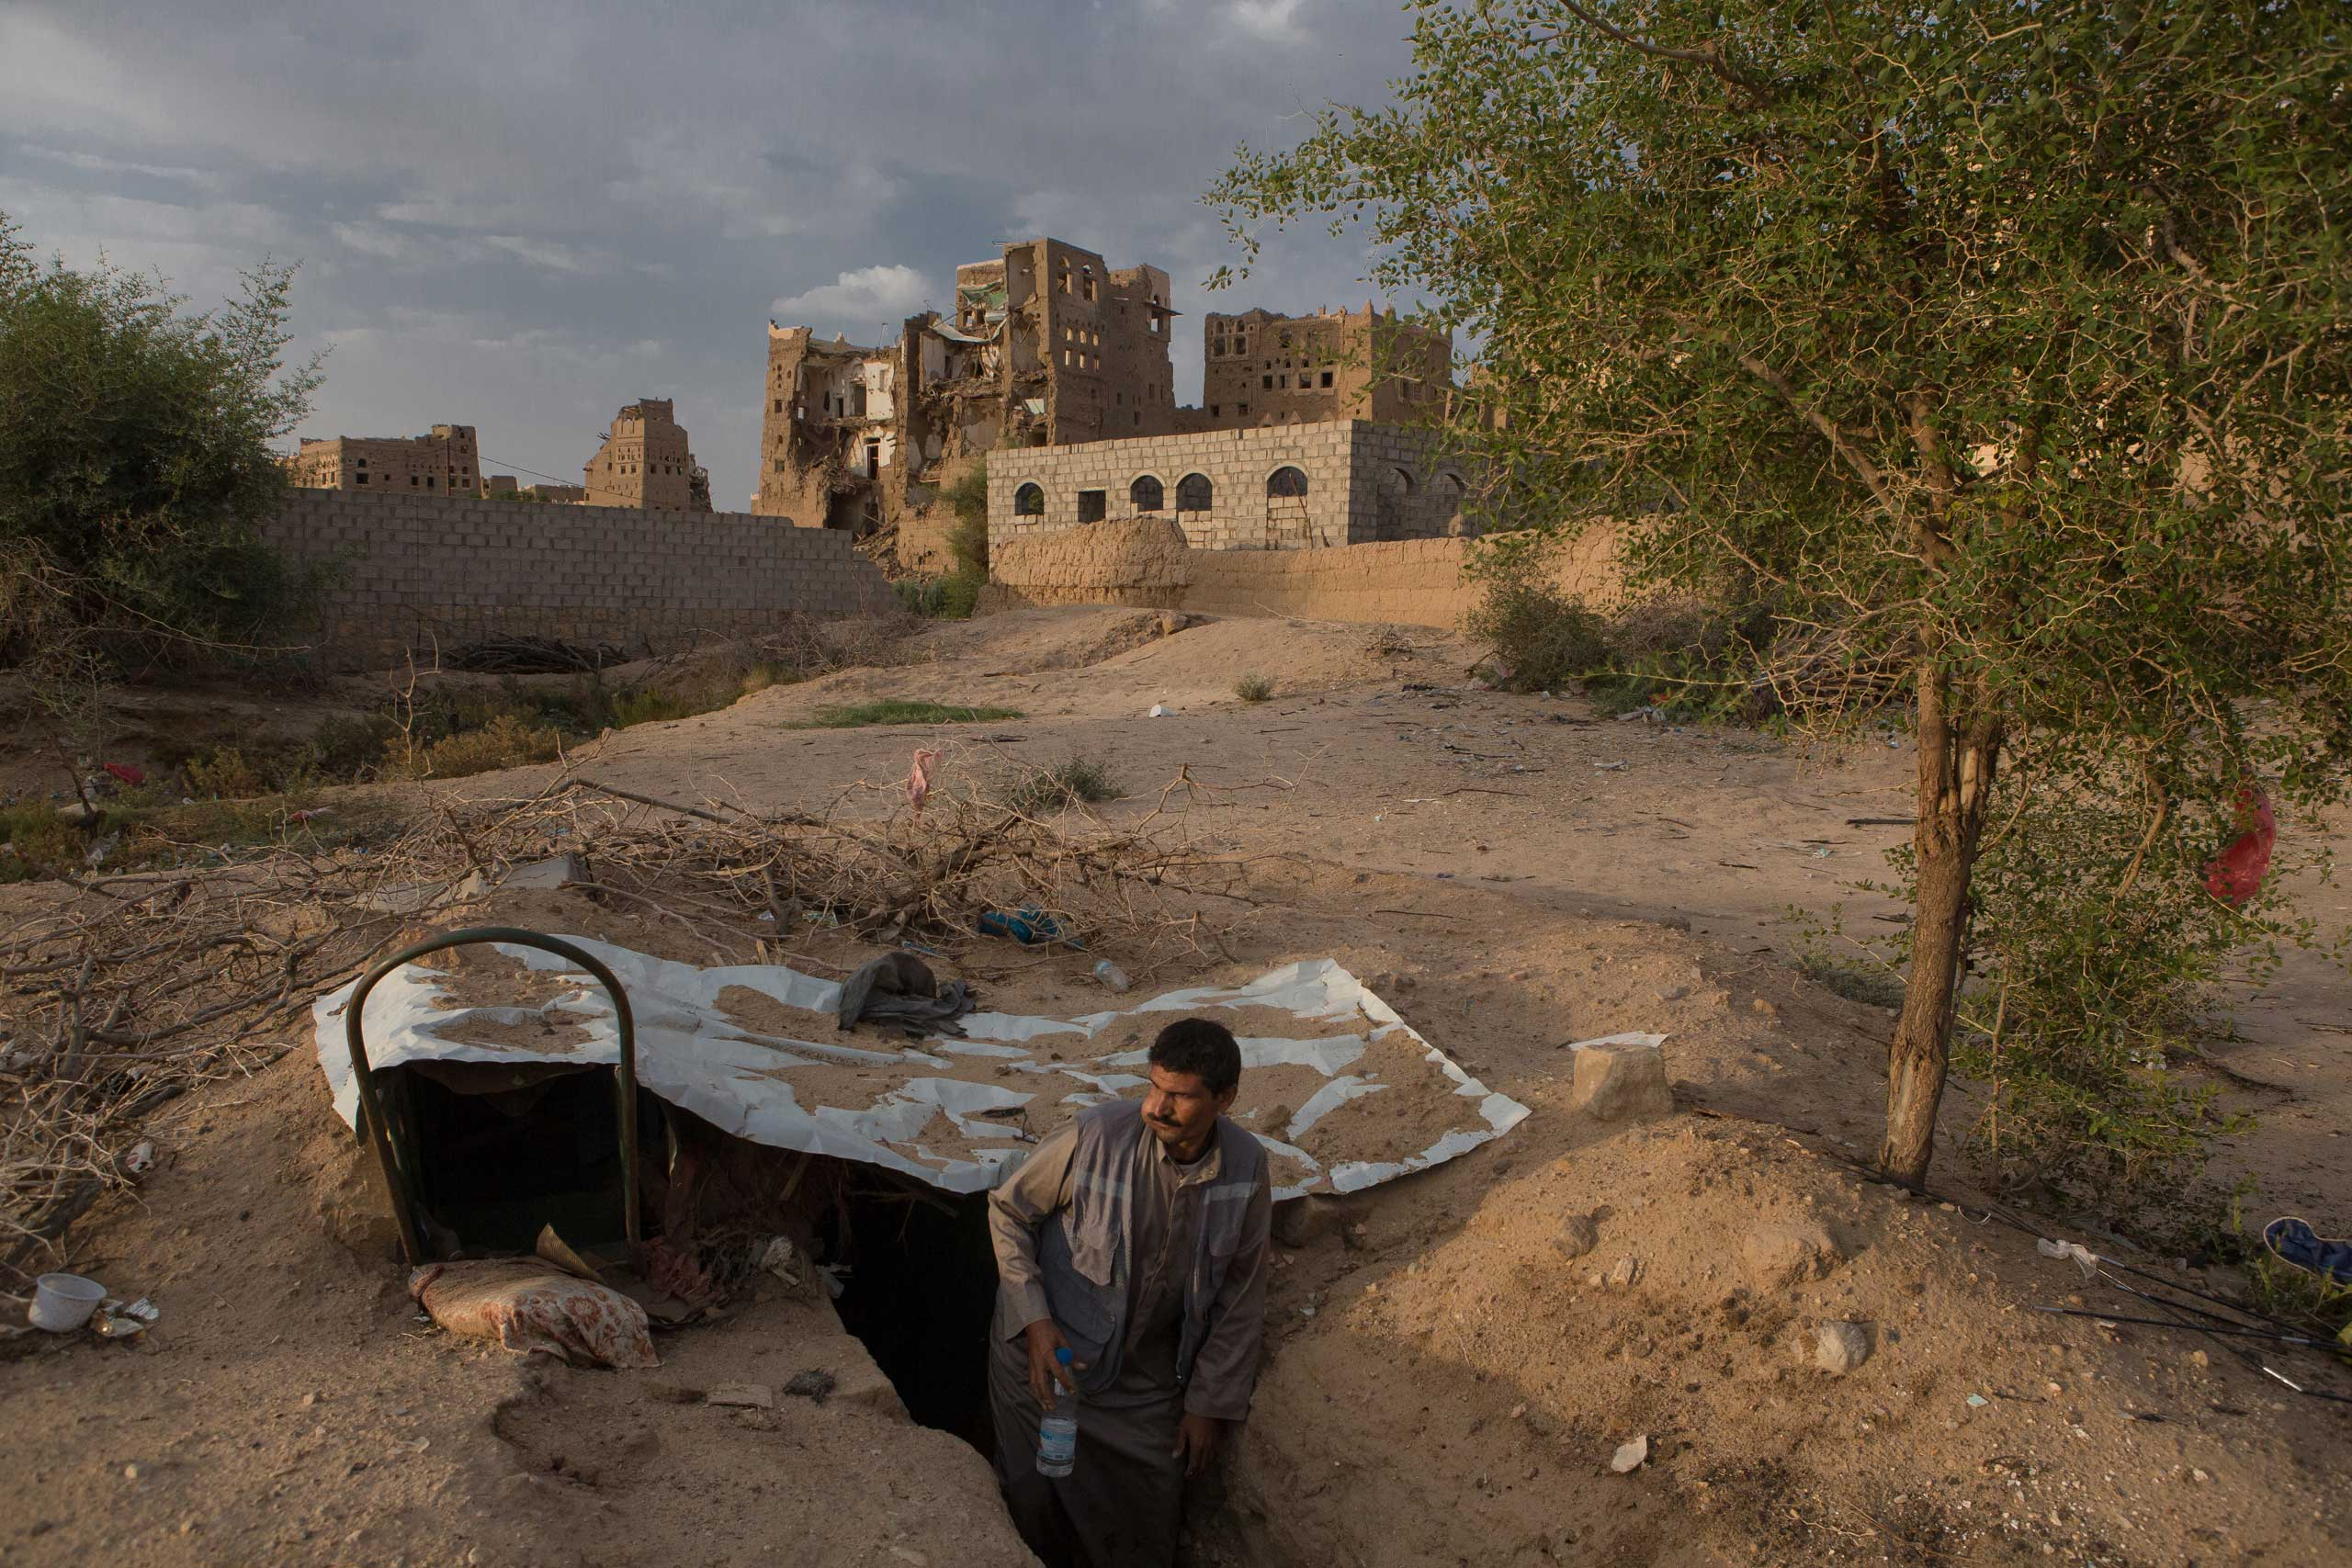 TIME LightBox:  Bearing Witness to the Victims of Yemen's 'Forgotten War'A man stands in a shelter dug in the ground in Rahban, on the outskirts of Saada City, the Houthi stronghold where the rebel movement was founded in northern Yemen, Aug. 26, 2015.